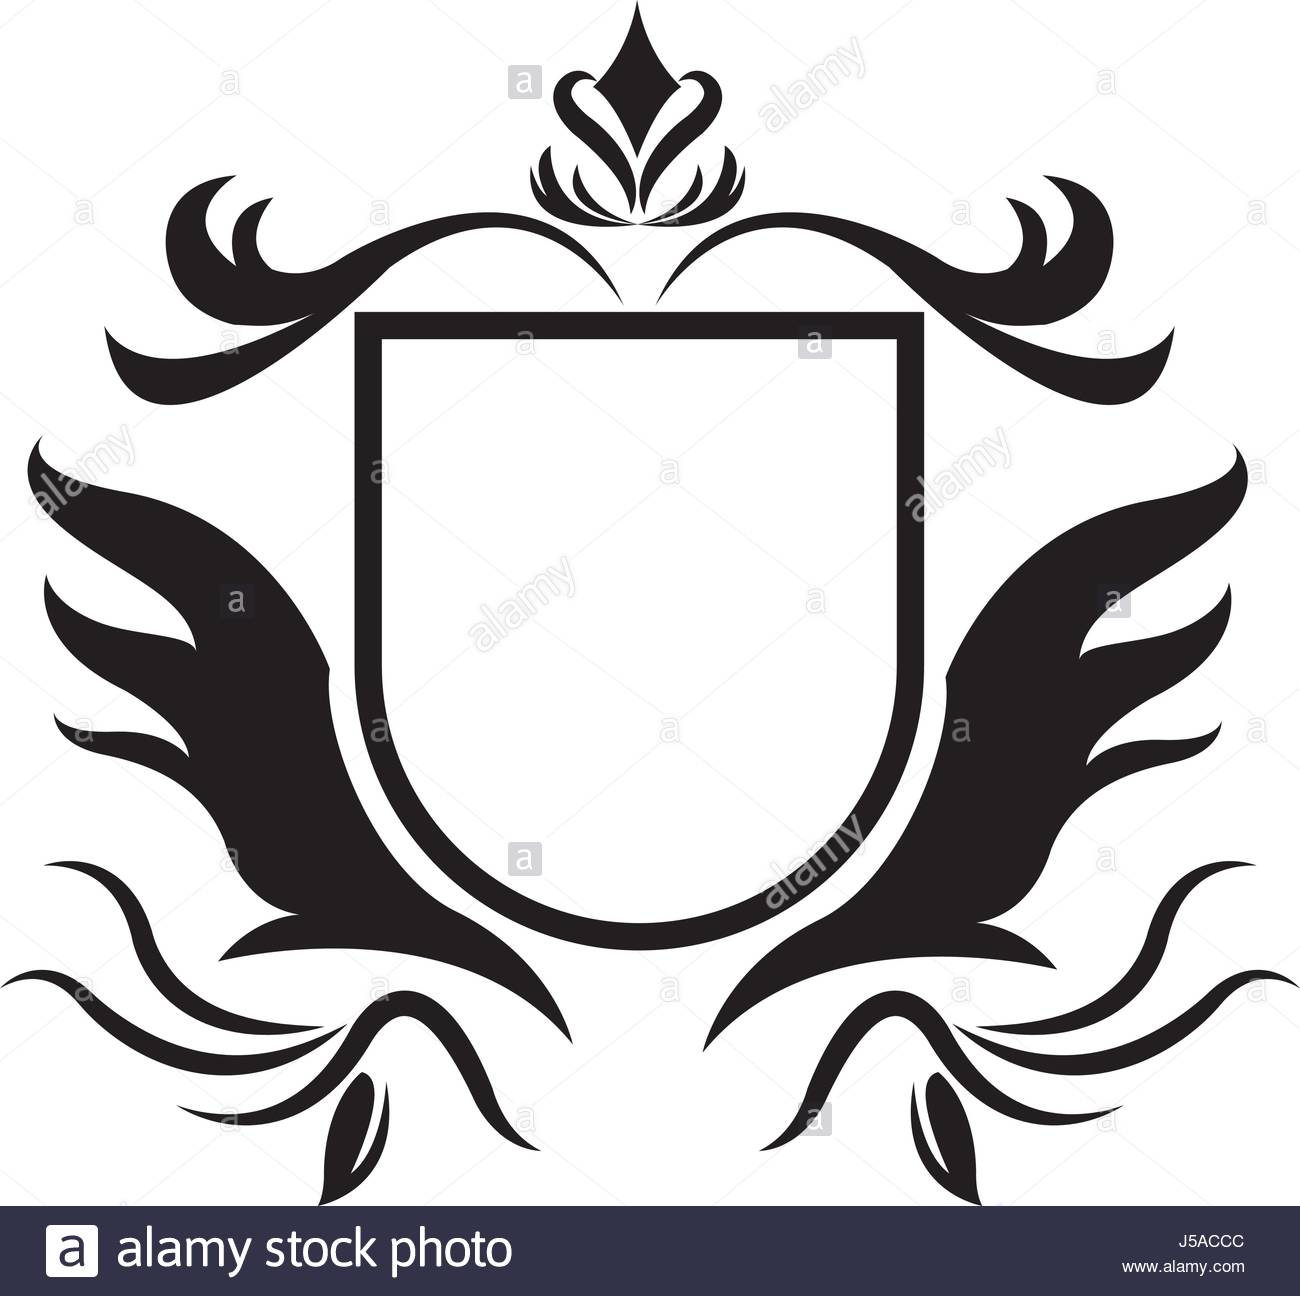 1300x1296 Decorative Shield Heraldry Victorian Elegant Frame Stock Vector